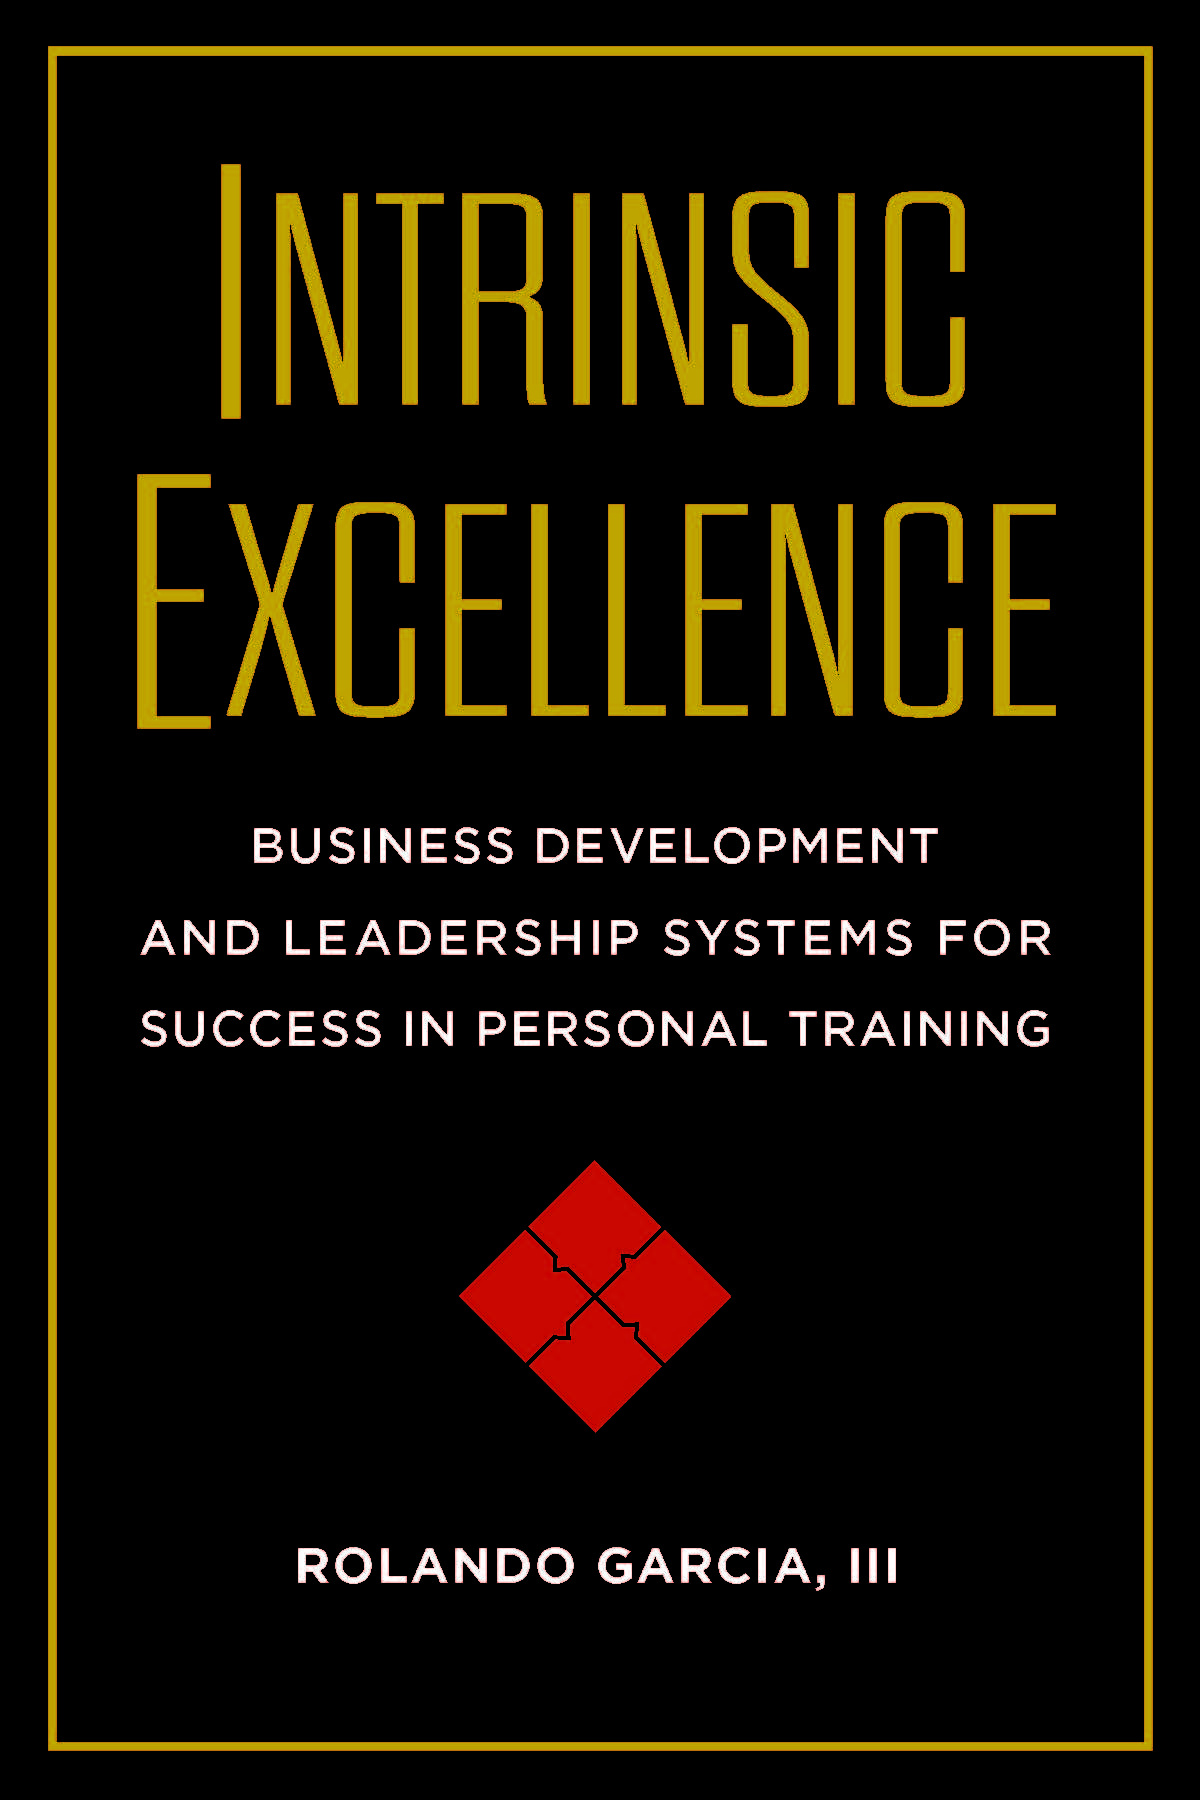 Intrinsic Excellence